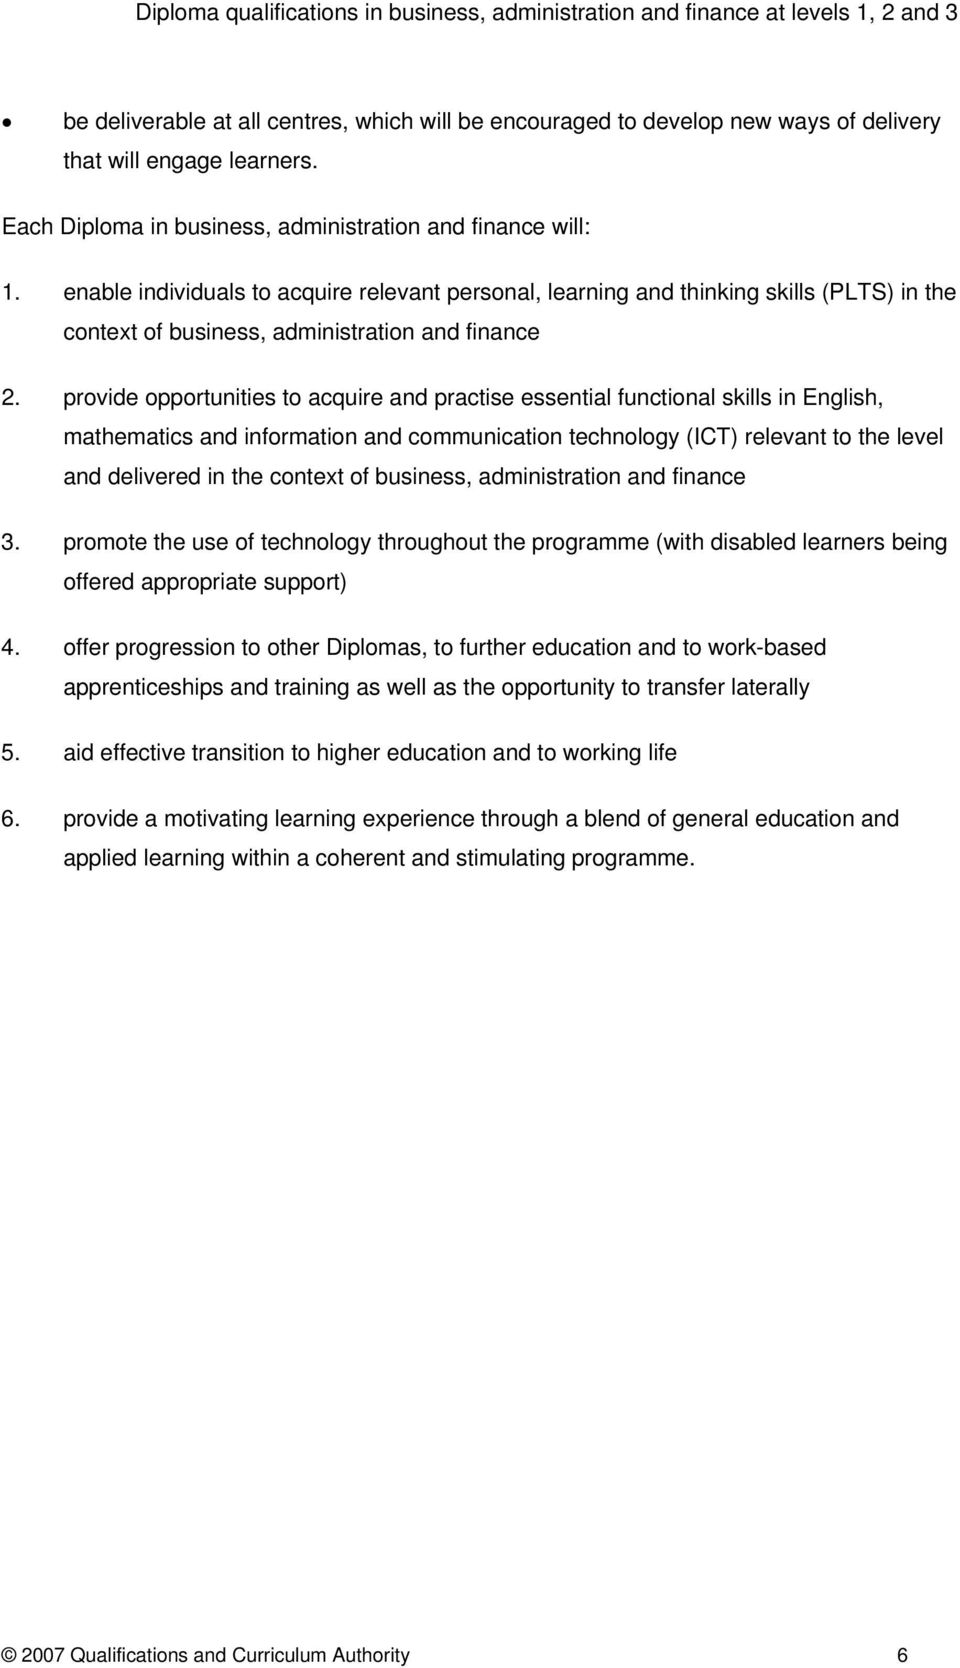 provide opportunities to acquire and practise essential functional skills in English, mathematics and information and communication technology (ICT) relevant to the level and delivered in the context